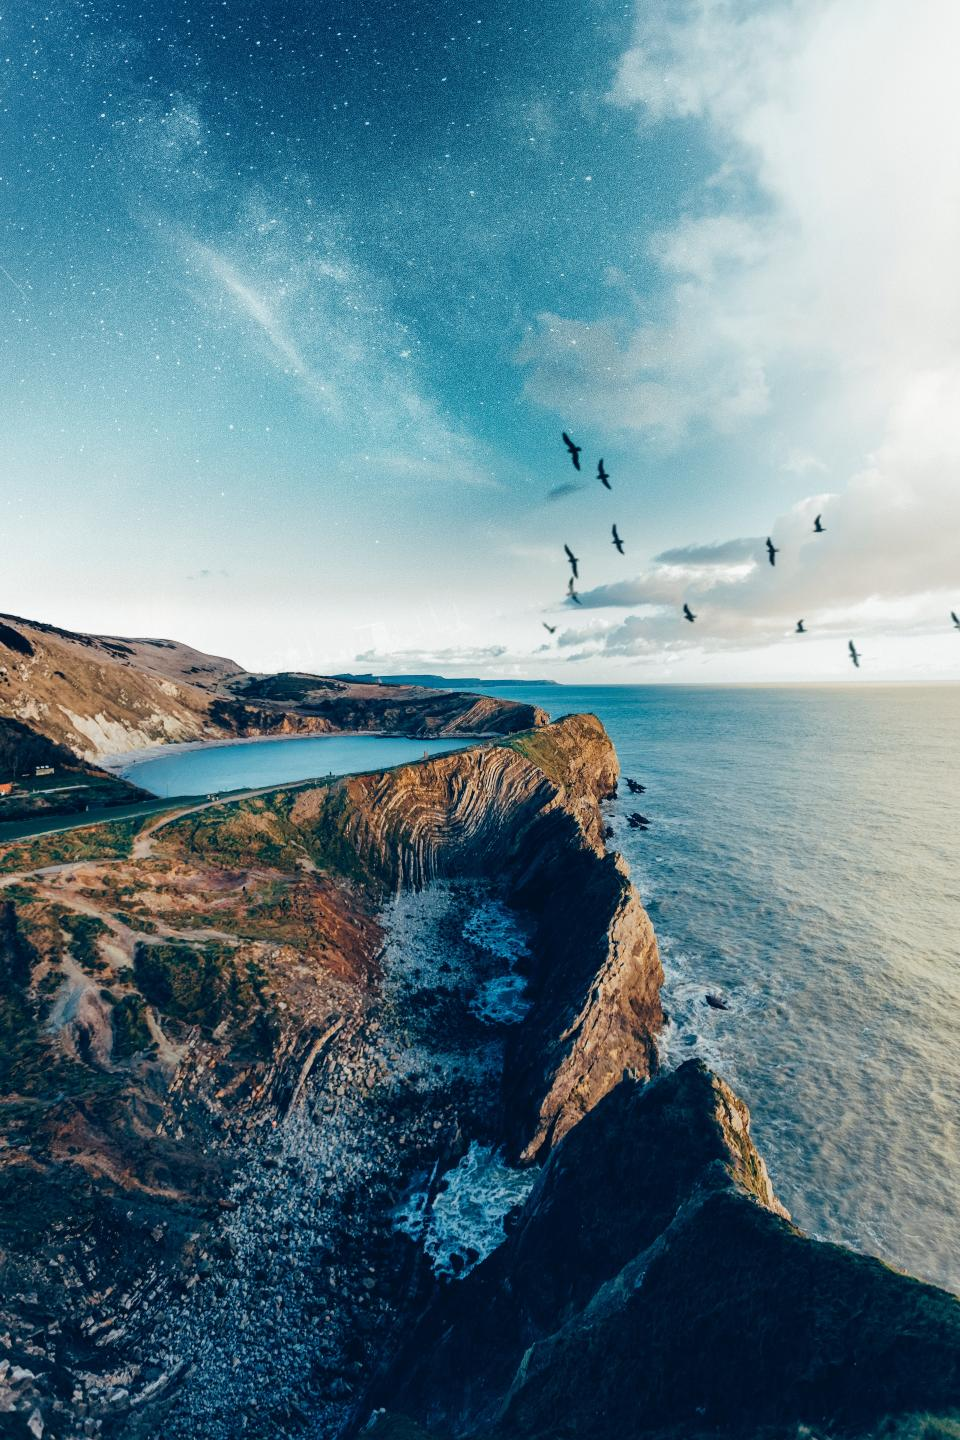 sea, ocean, water, waves, nature, blue, lagoon, clouds, sky, hill, mountain, highland, landscape, sky, stars, clouds, birds, animal, flying